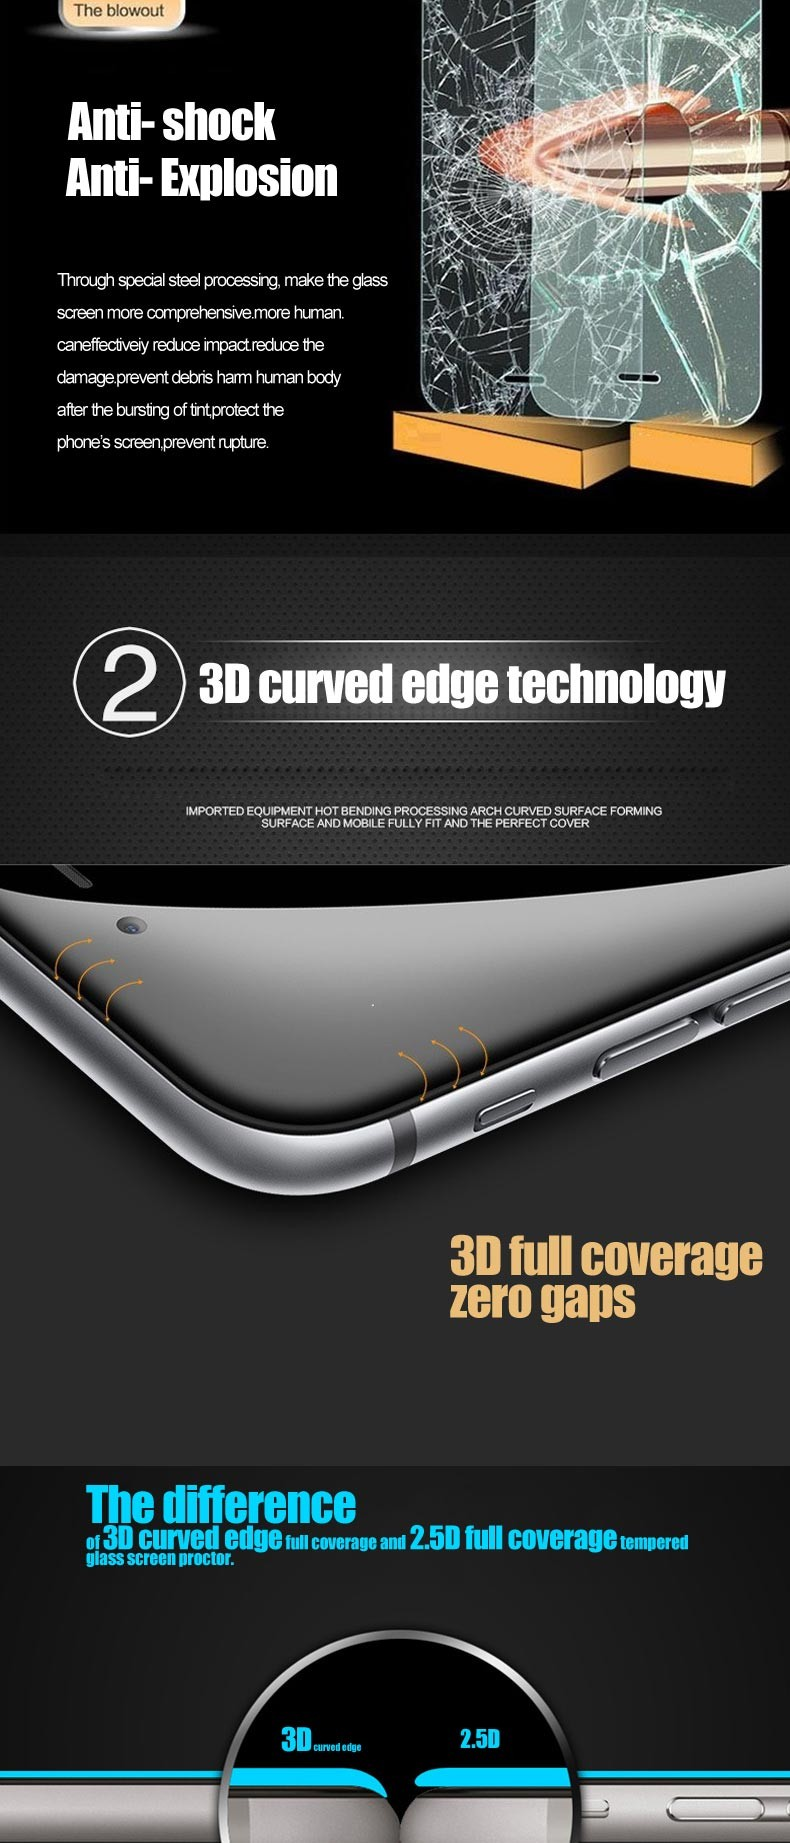 Factory Price 3d Curved Mobile Phone Screensavers For Iphone 6s - Buy  Mobile Phone Screensavers For Iphone 6s,3d Curved Mobile Phone Screensavers  For